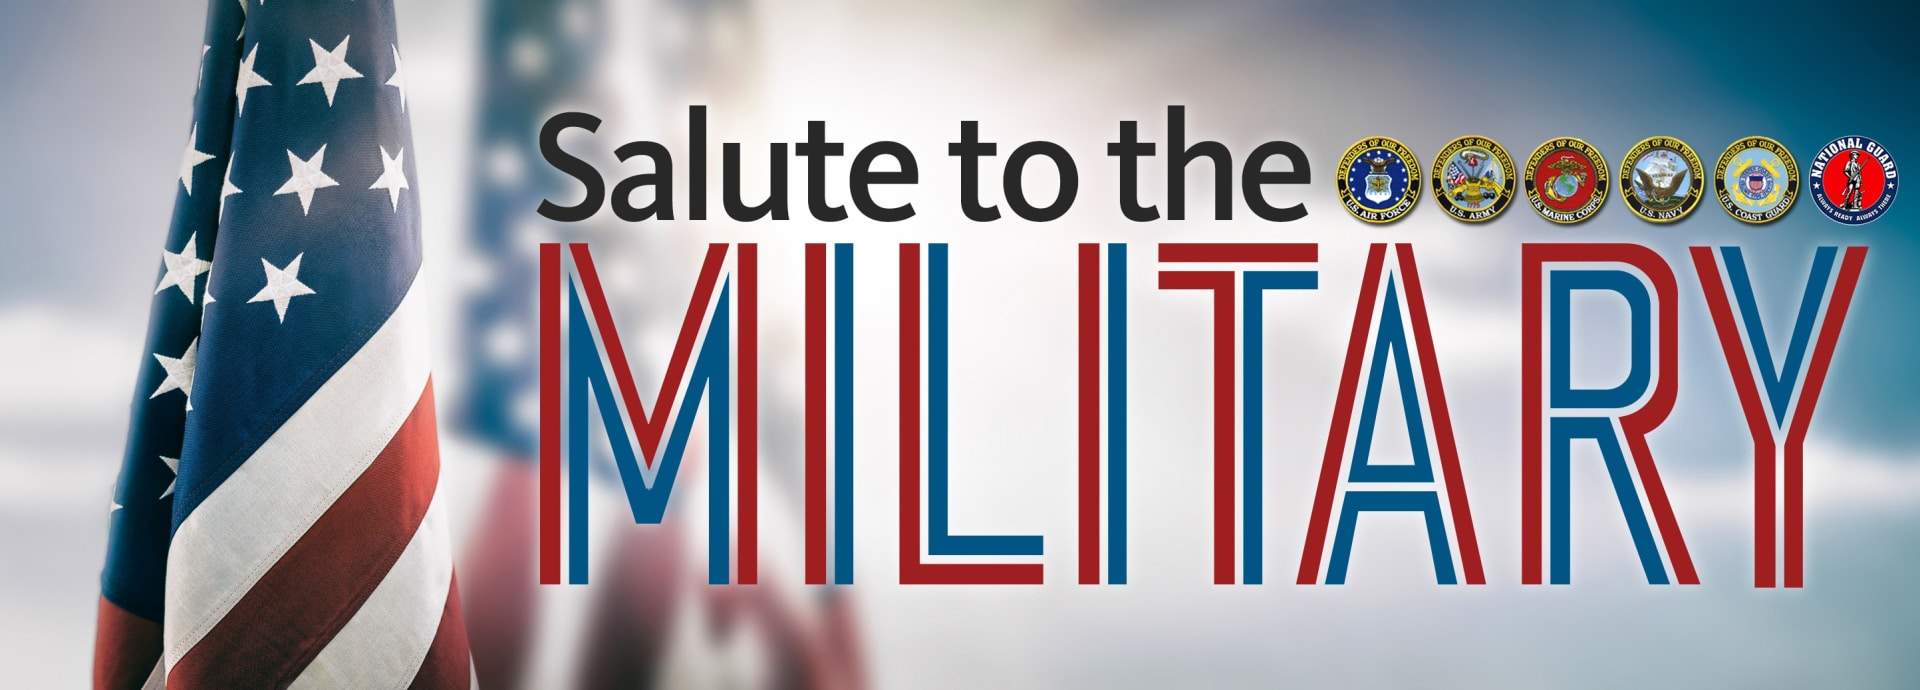 Salute-to-the-Military-graphic-revised-w1920.jpg